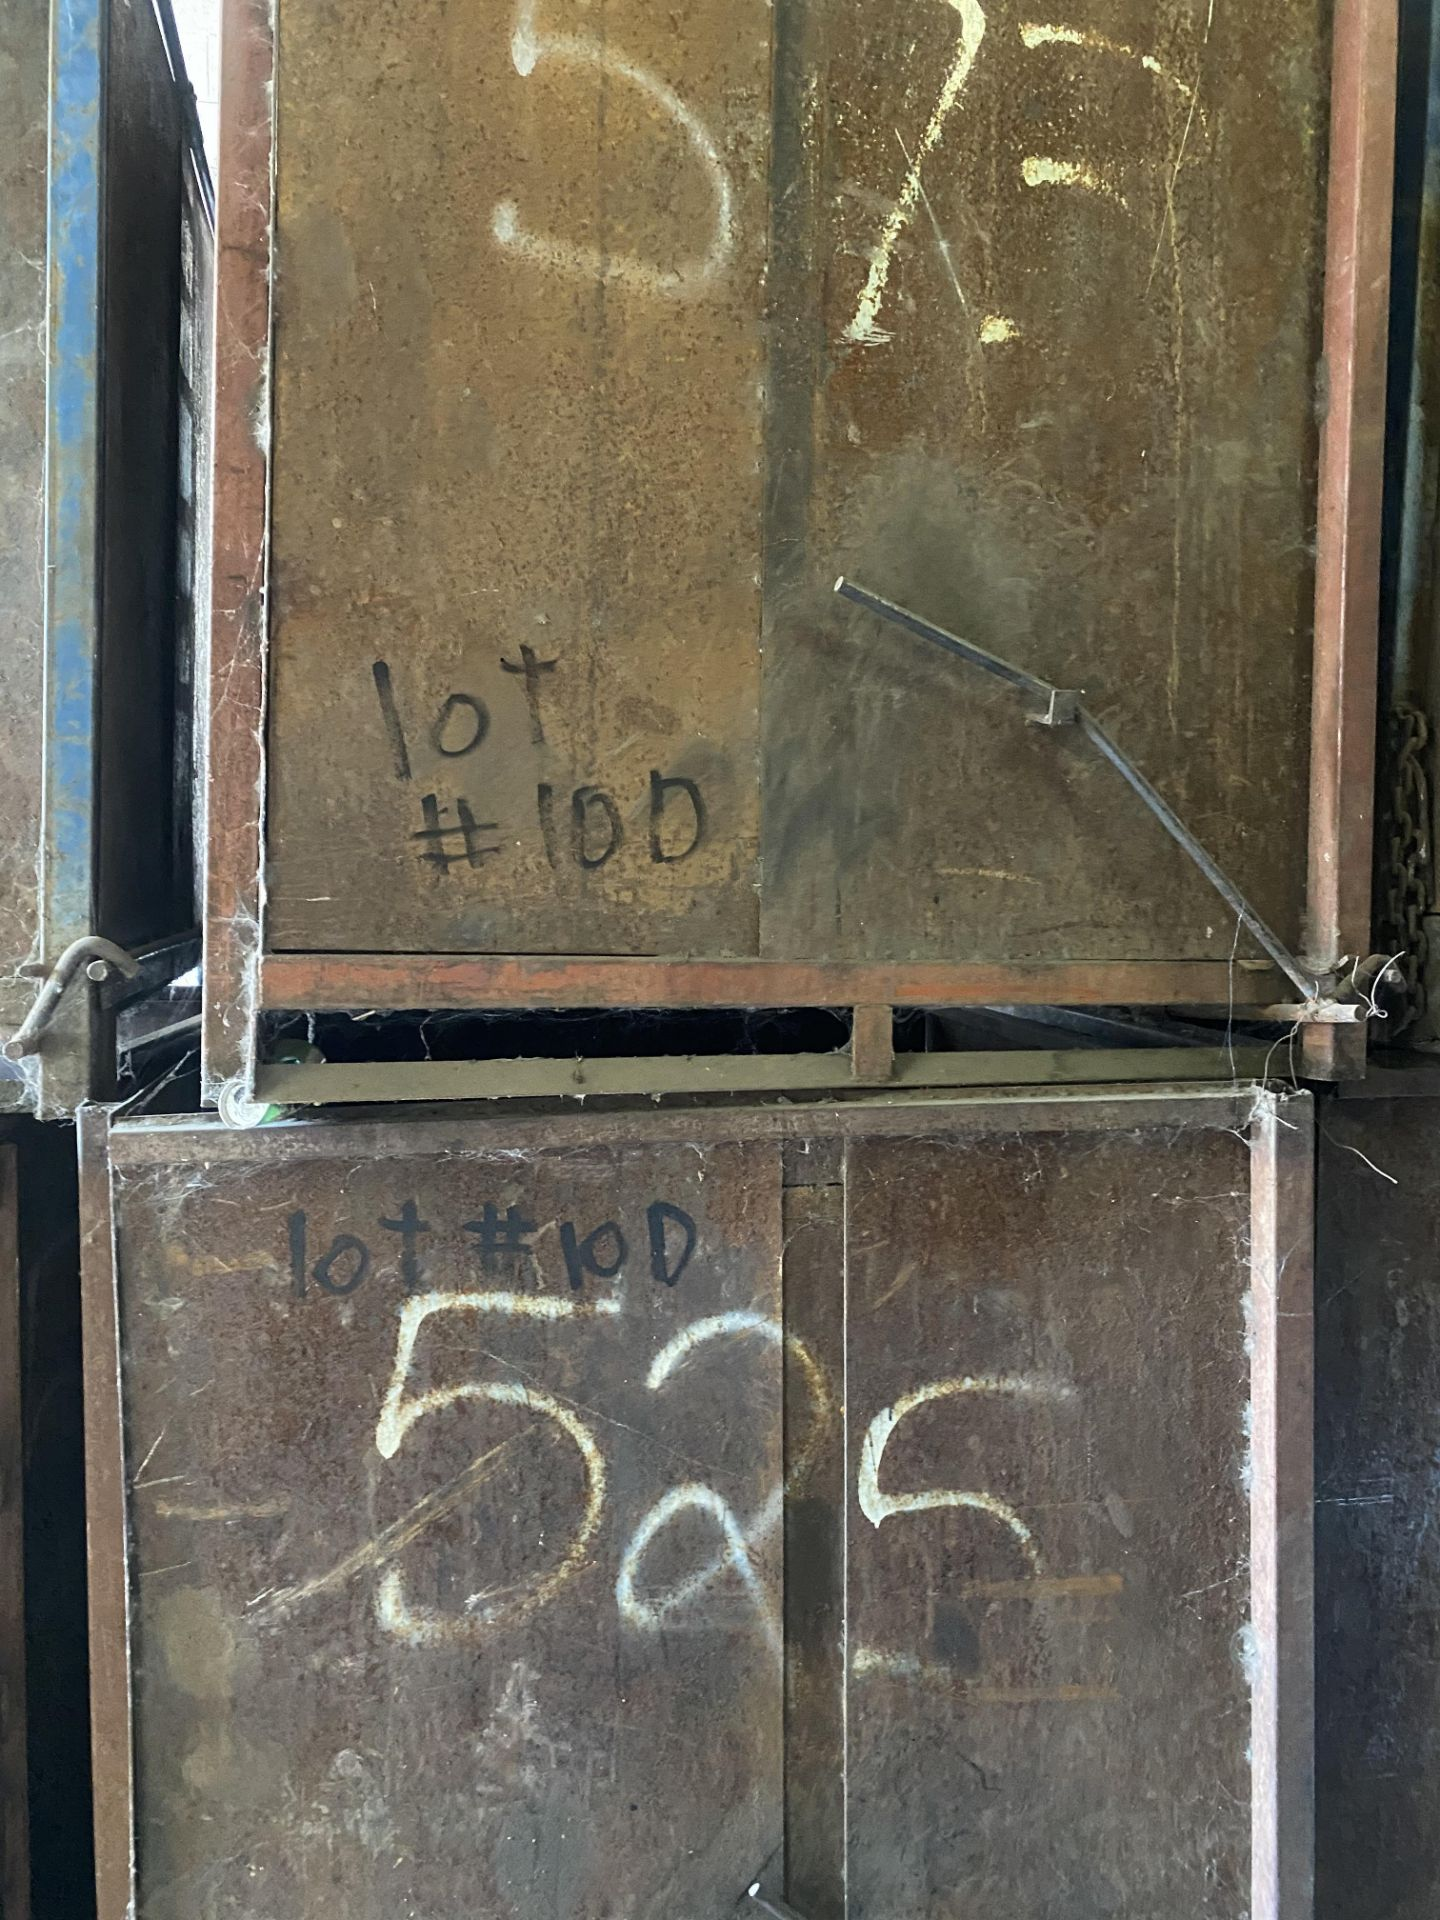 Lot 10D - Lot of (2) Steel Can Hoppers